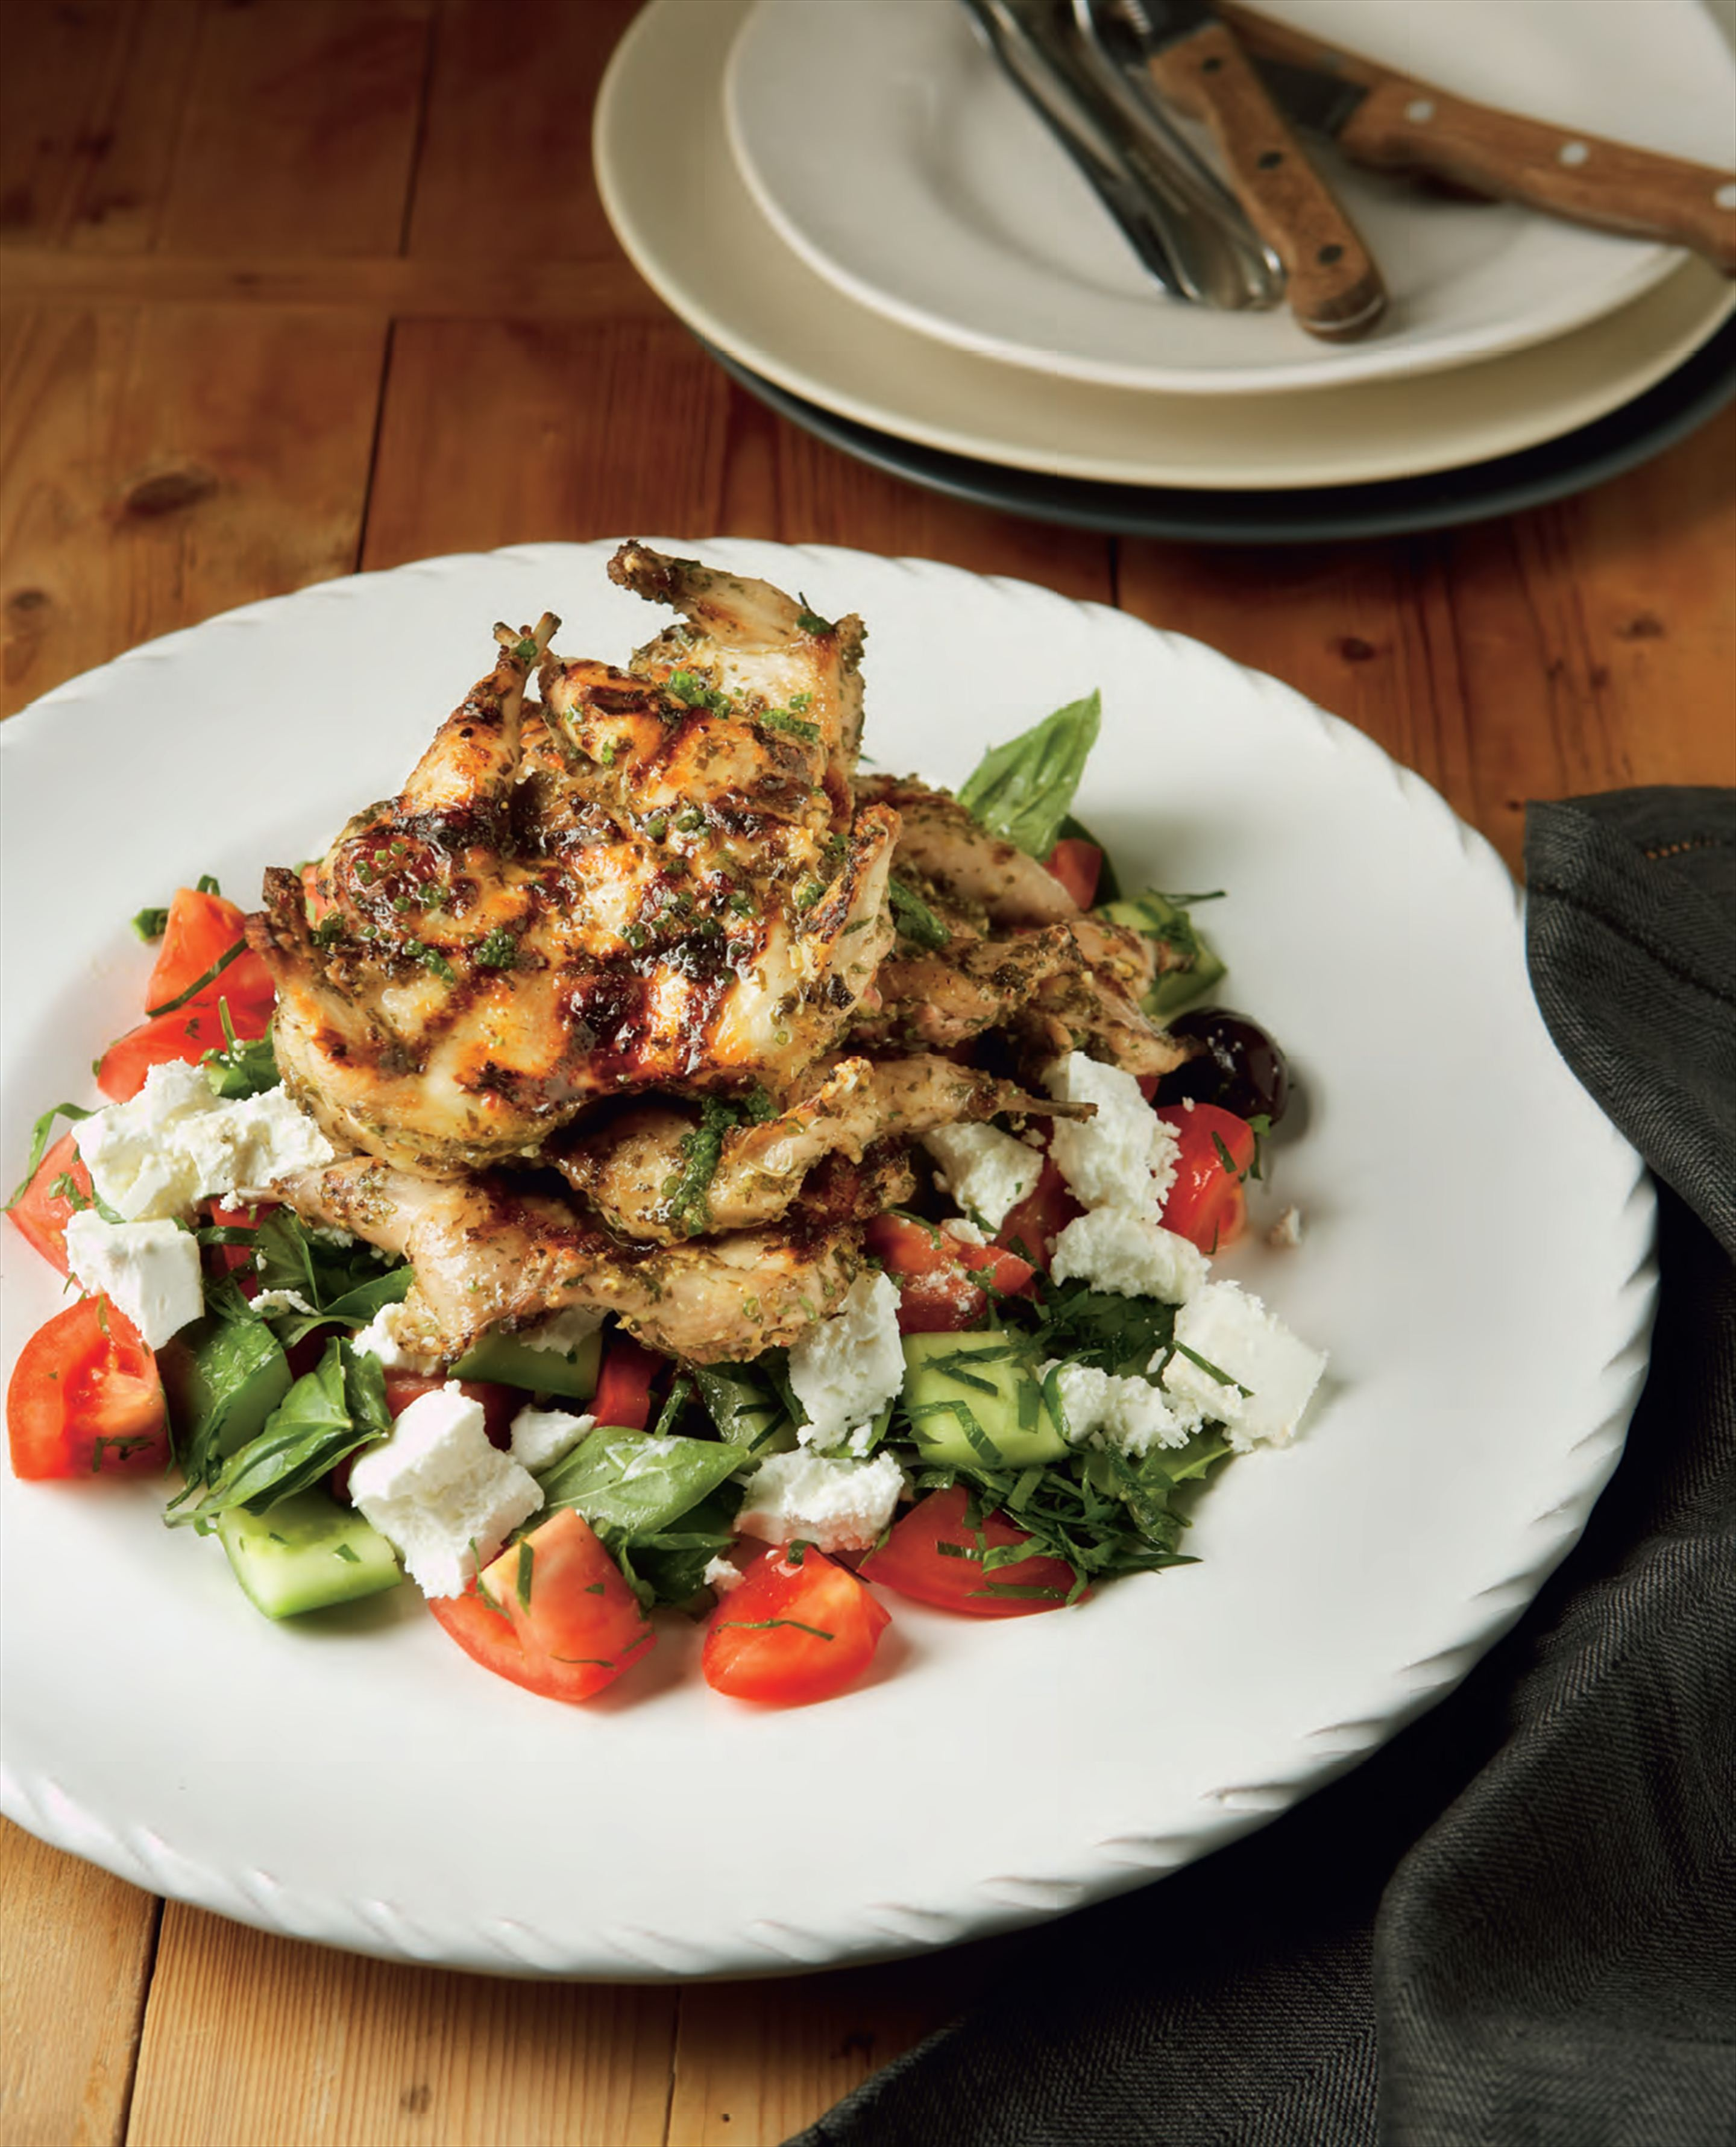 Barbecued quail, Greek–style